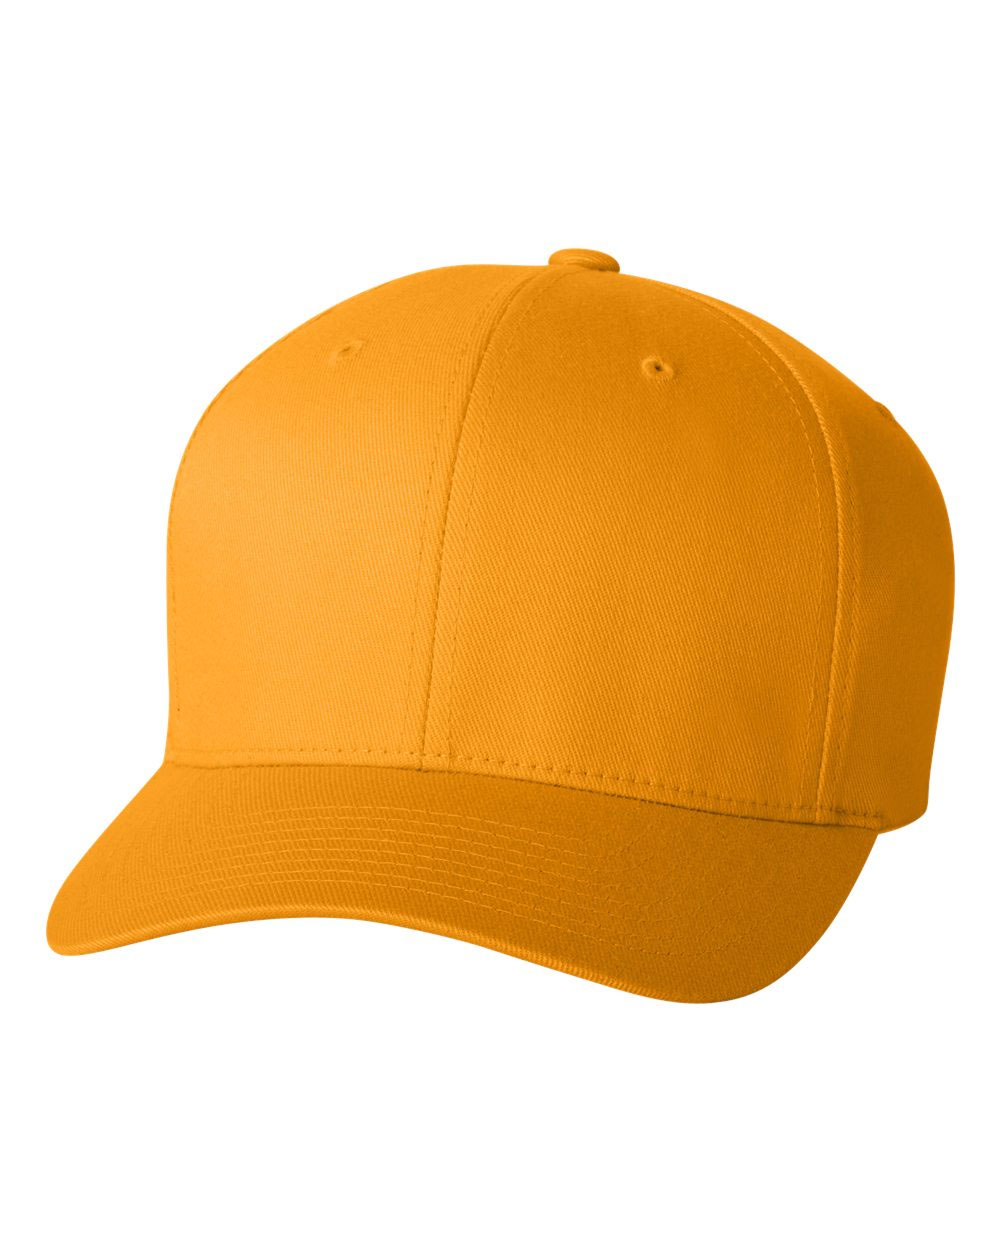 Yupoong Six Panel Twill Flex Fit Cap